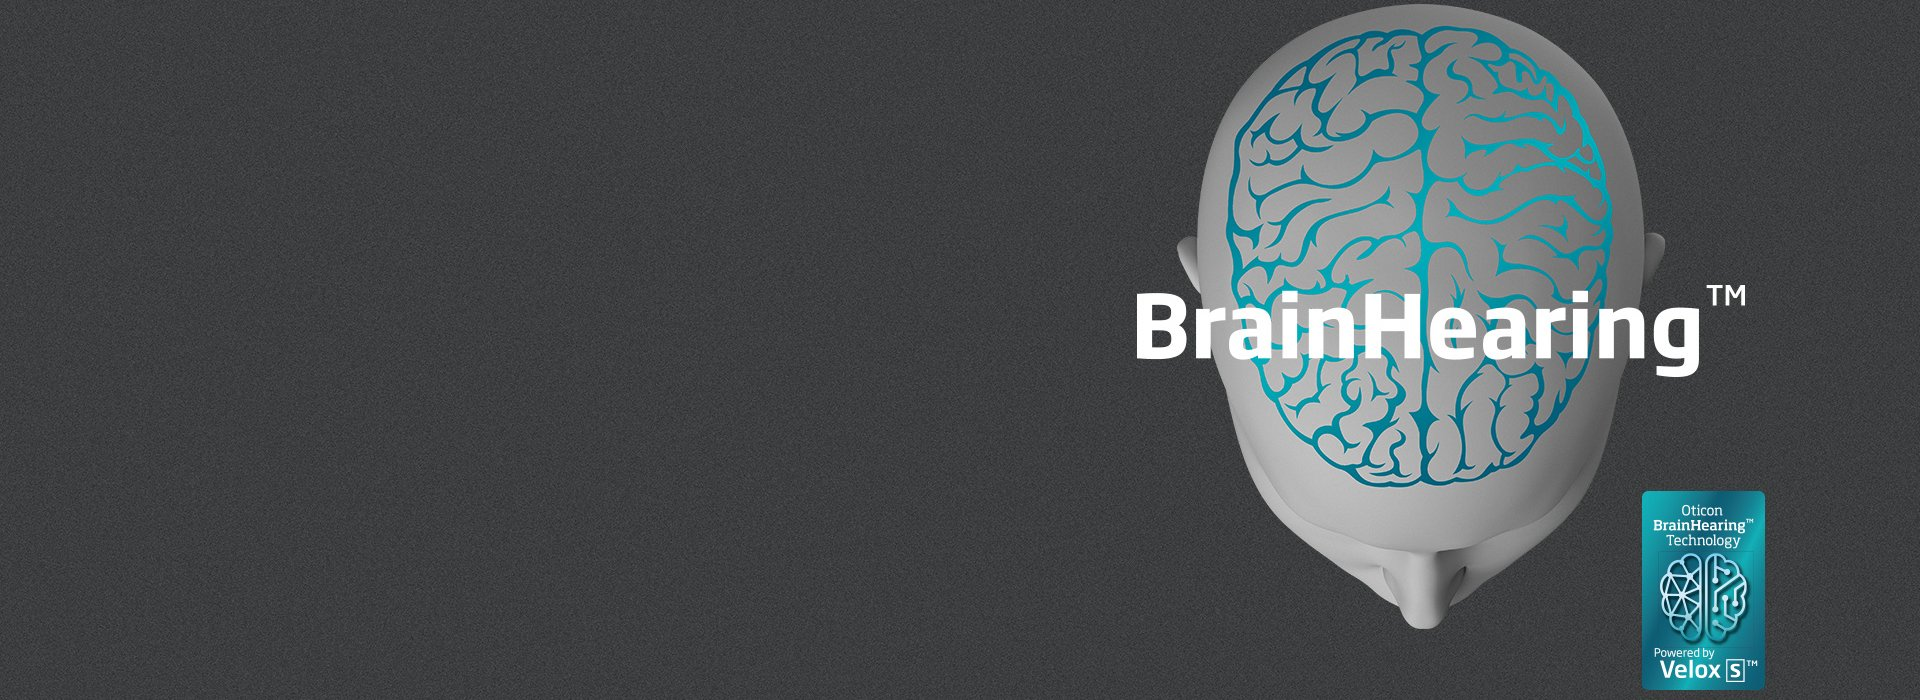 opns_re_we-think-brain-first_1920x700